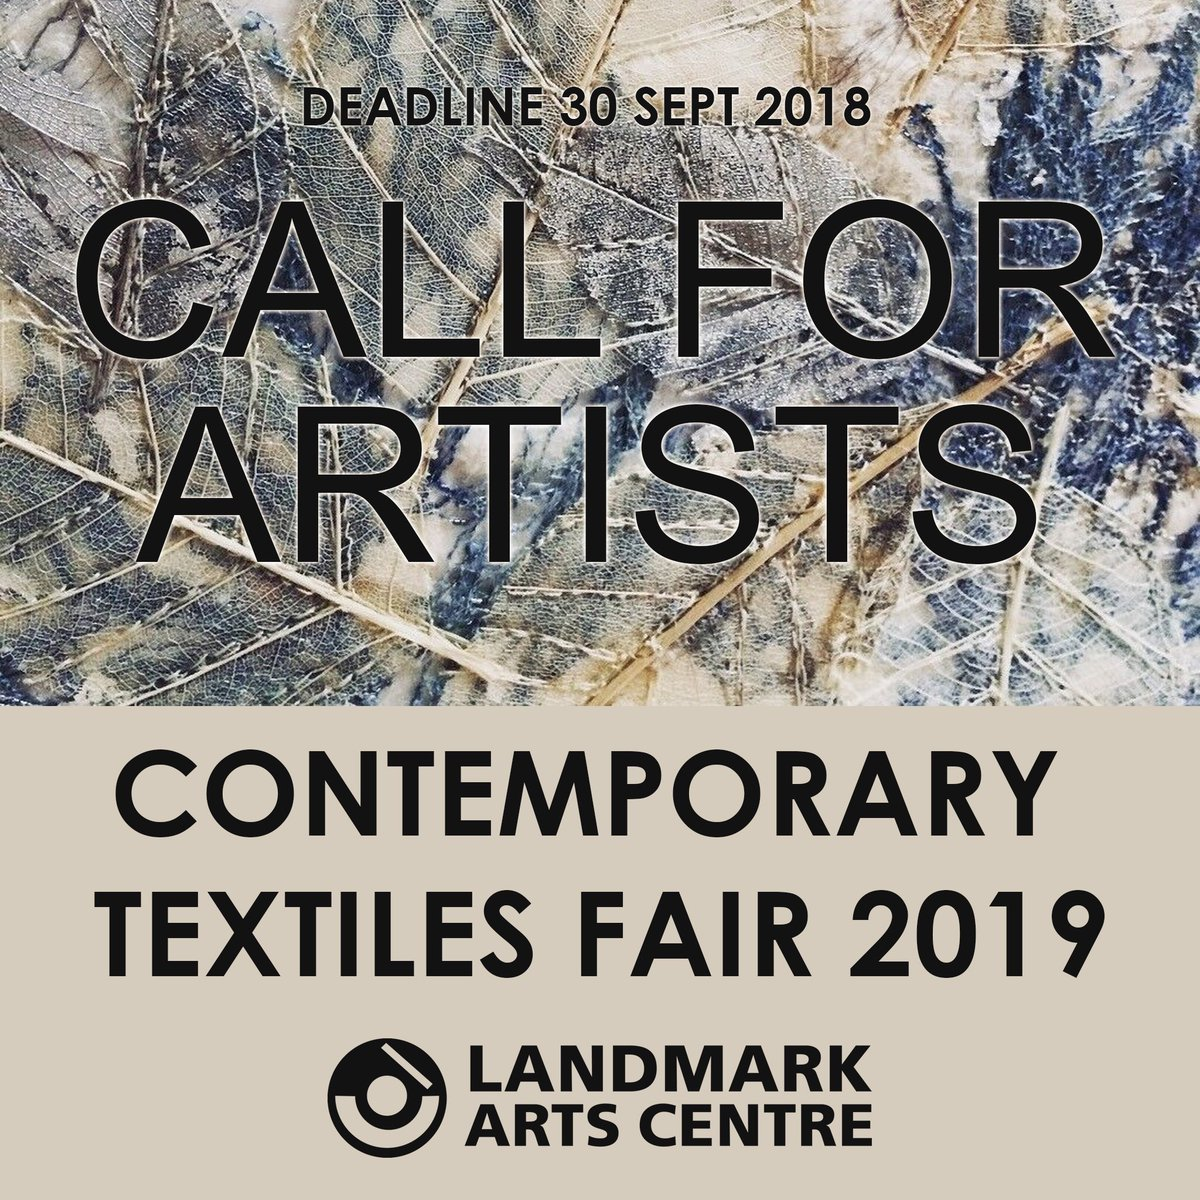 Applications now open for the Contemporary Textiles Fair 2019! More info on the website. #teddington #textiles #artfair #artopp #callforartists #landmarkarts<br>http://pic.twitter.com/Yd8zVExIWA